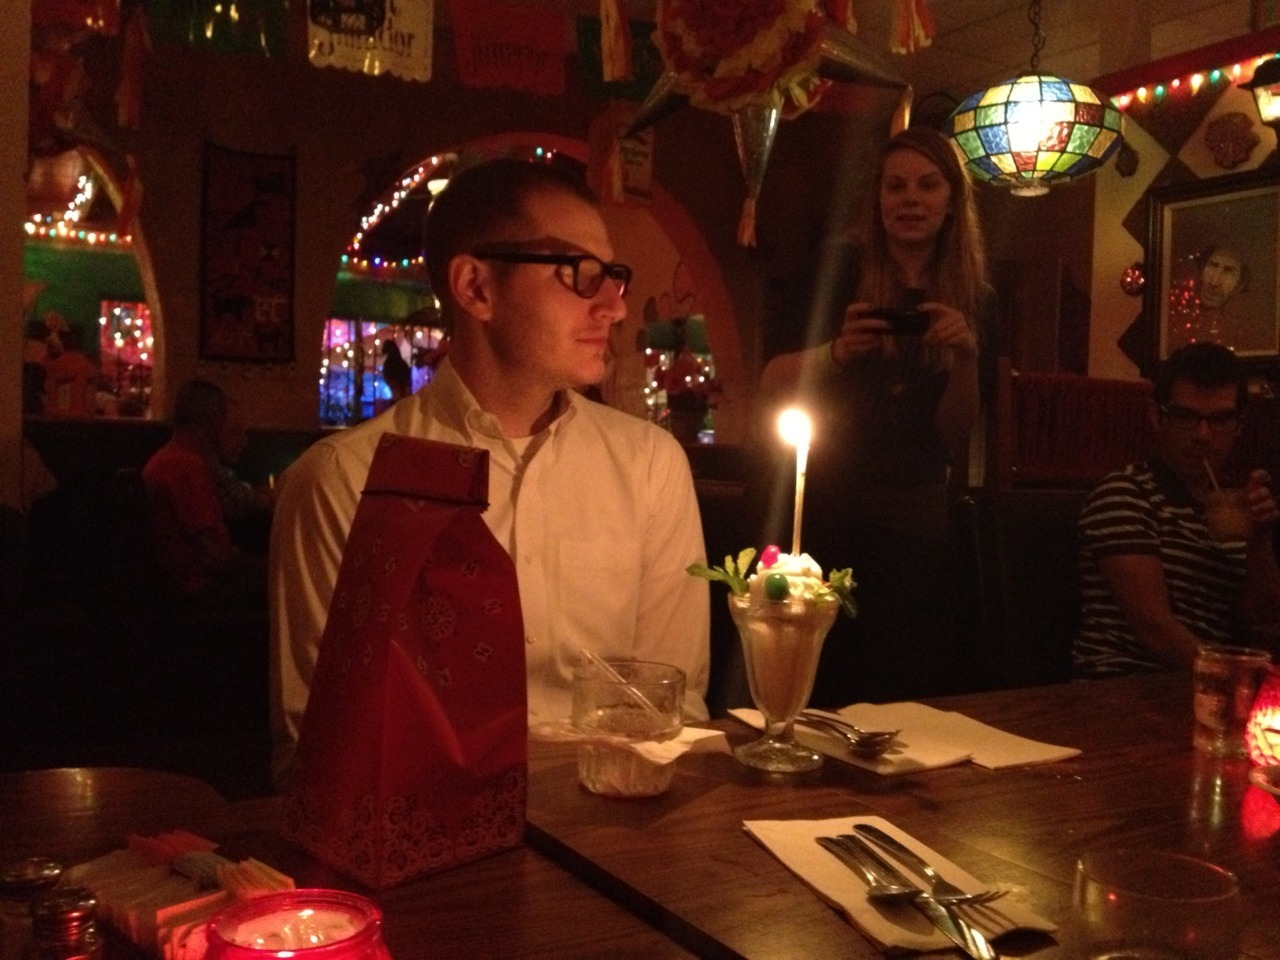 Happy birthday, Garrett! The first time I went to a birthday dinner for you, you were turning 19, and none of the things that made us such good friends had happened yet. The last time I went to a birthday dinner for you, you were turning 22 and preparing to leave New York for Los Angeles. Now you are 27, and I am living in LA, too, and so happy I can celebrate with you again. It has been such a pleasure to grow up and become a real person with you!